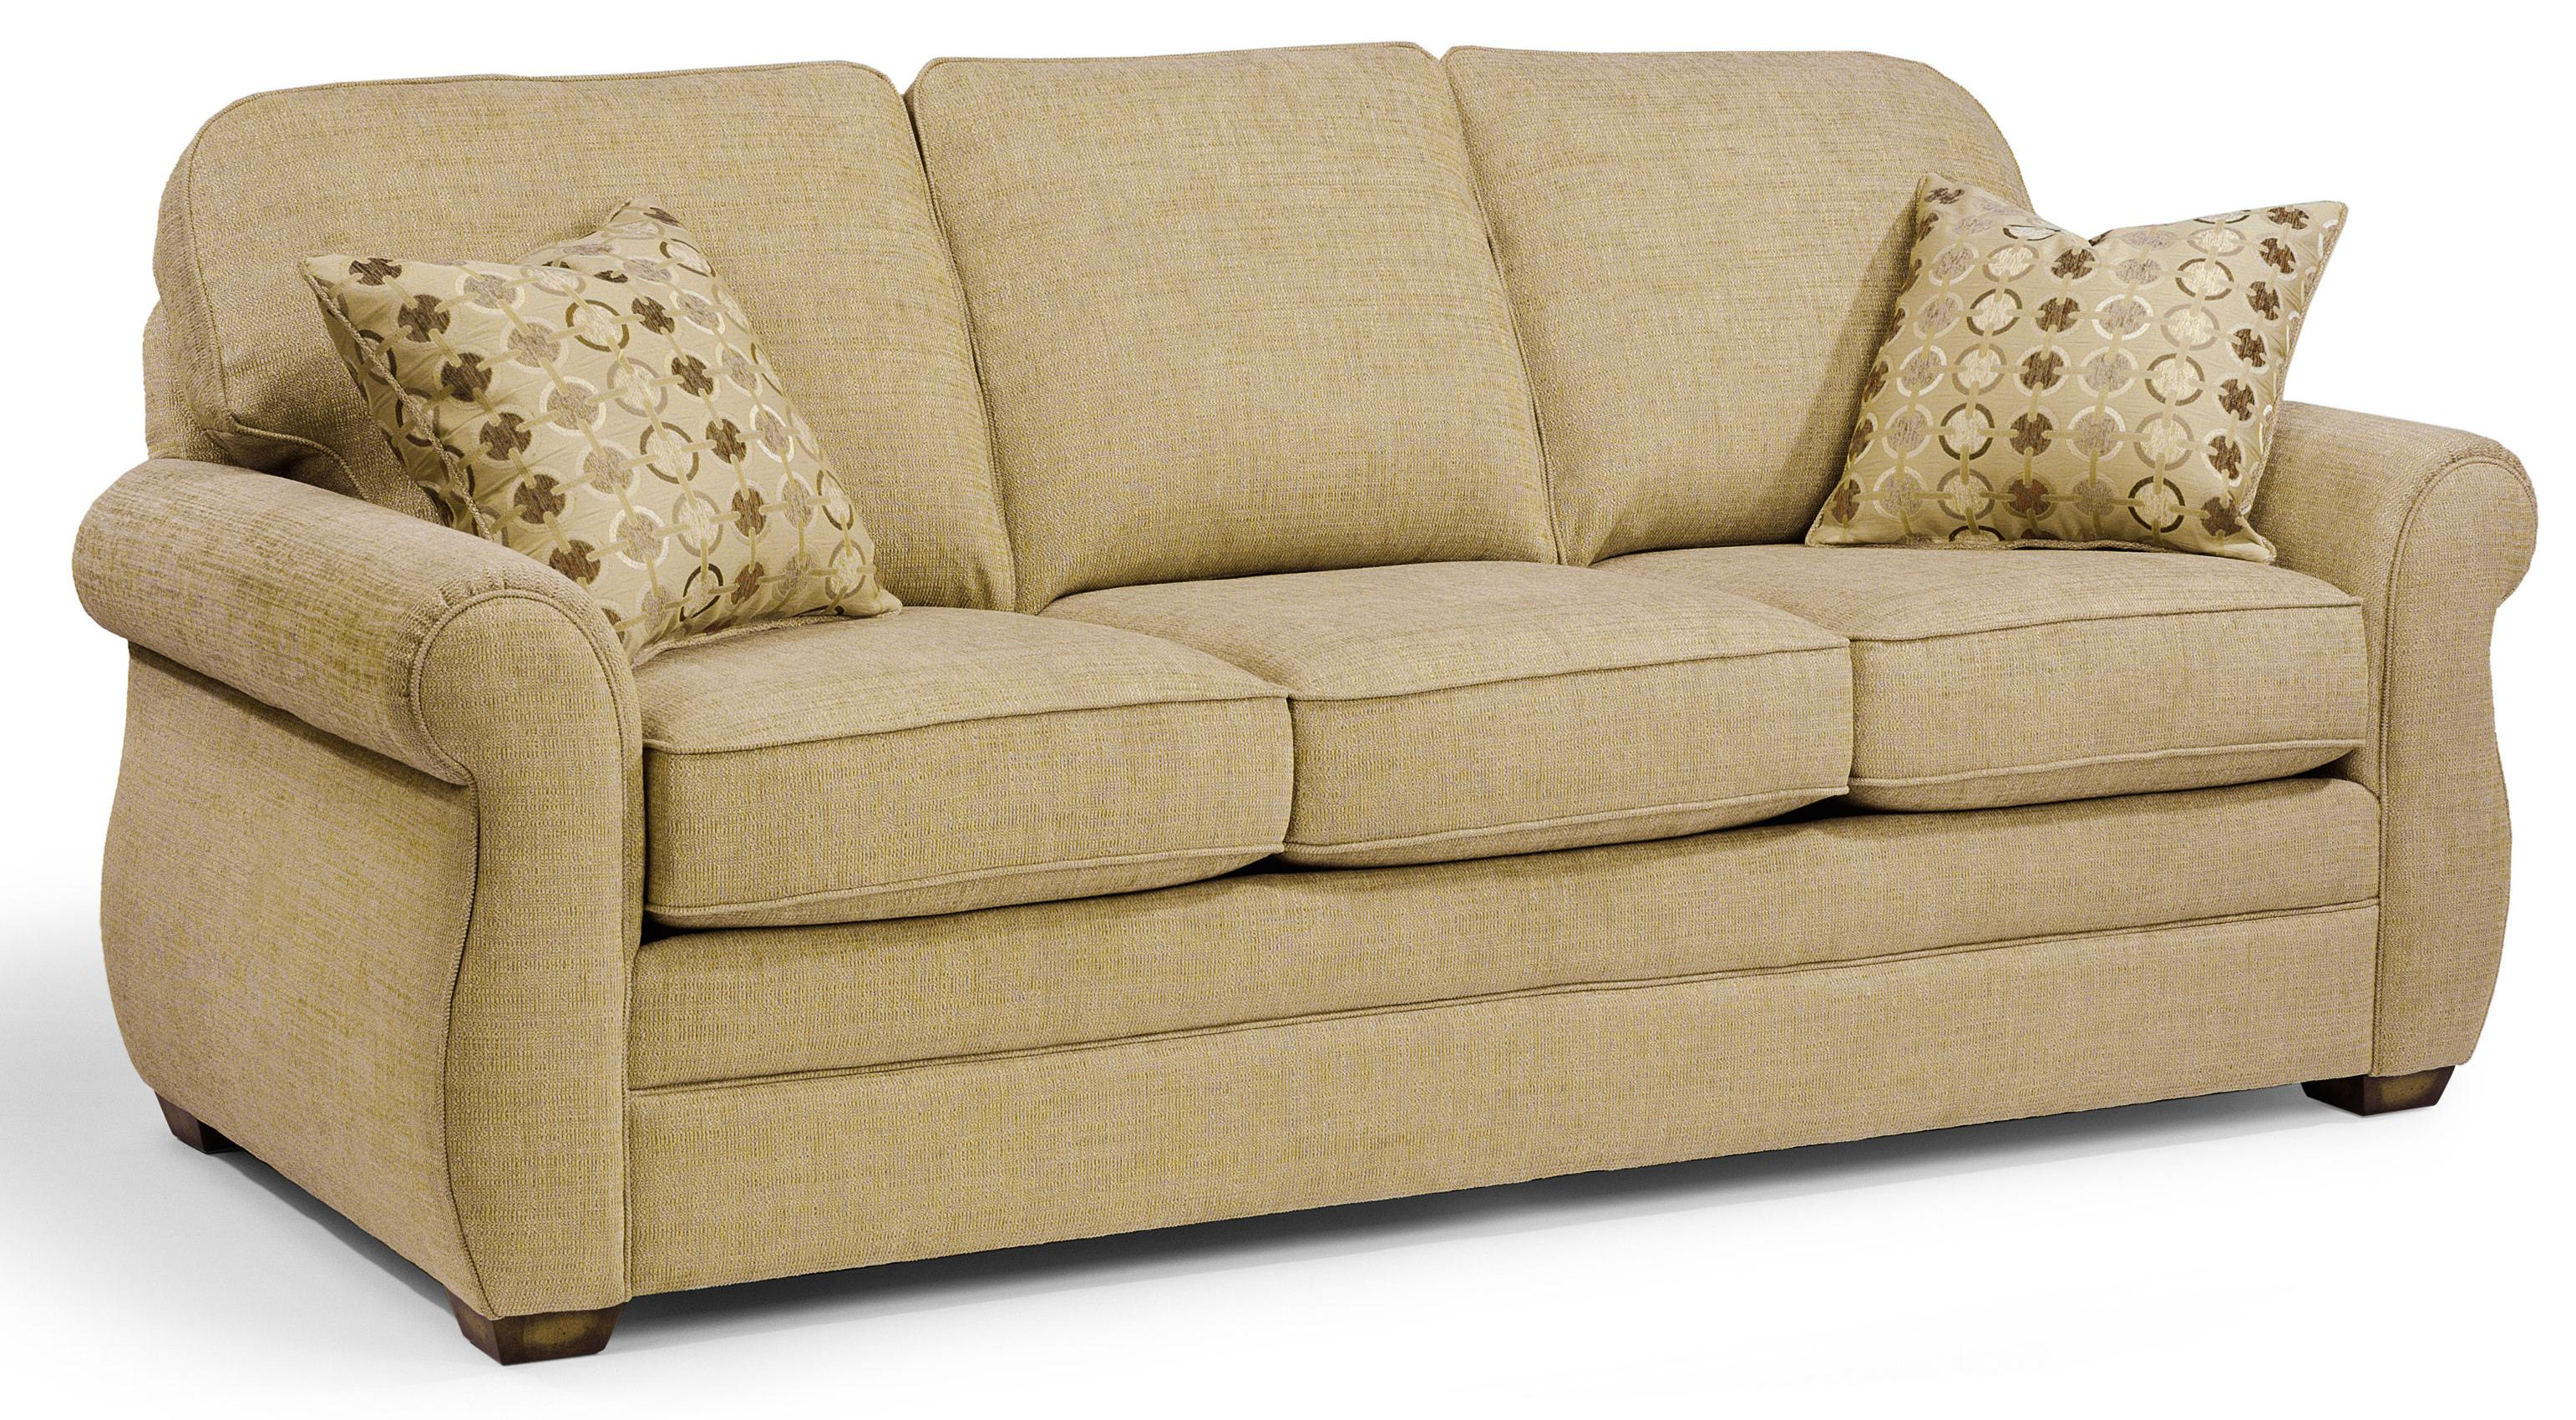 Flexsteel Whitney Sofa with Turned Arms and Wood Block Feet     Flexsteel Whitney Sofa   Item Number  5643 31